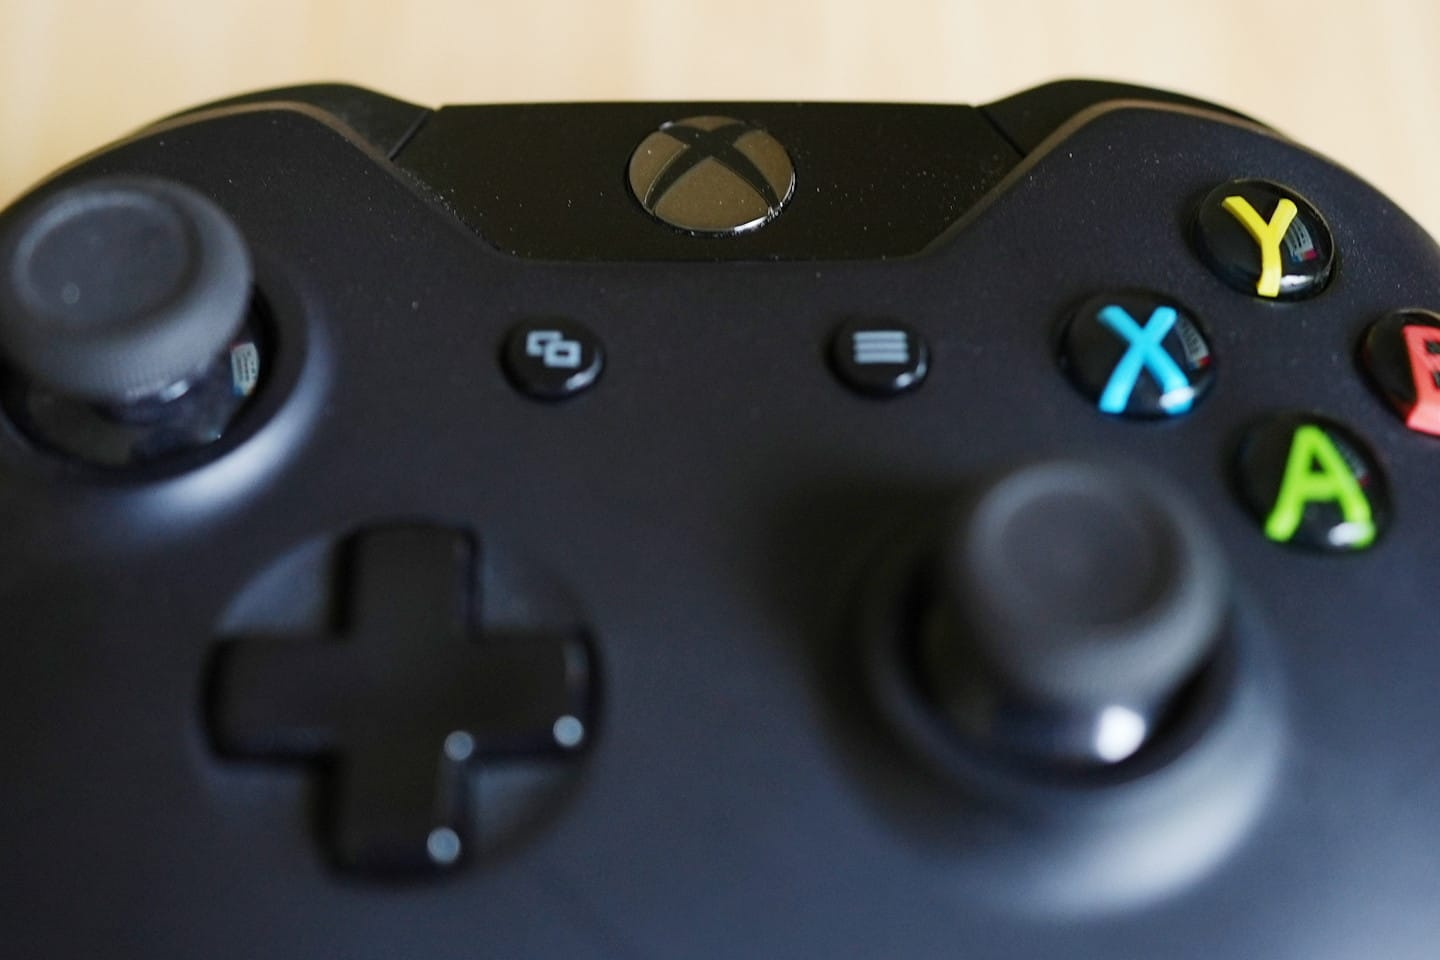 Xbox One Wireless Controller Without Bluetooth